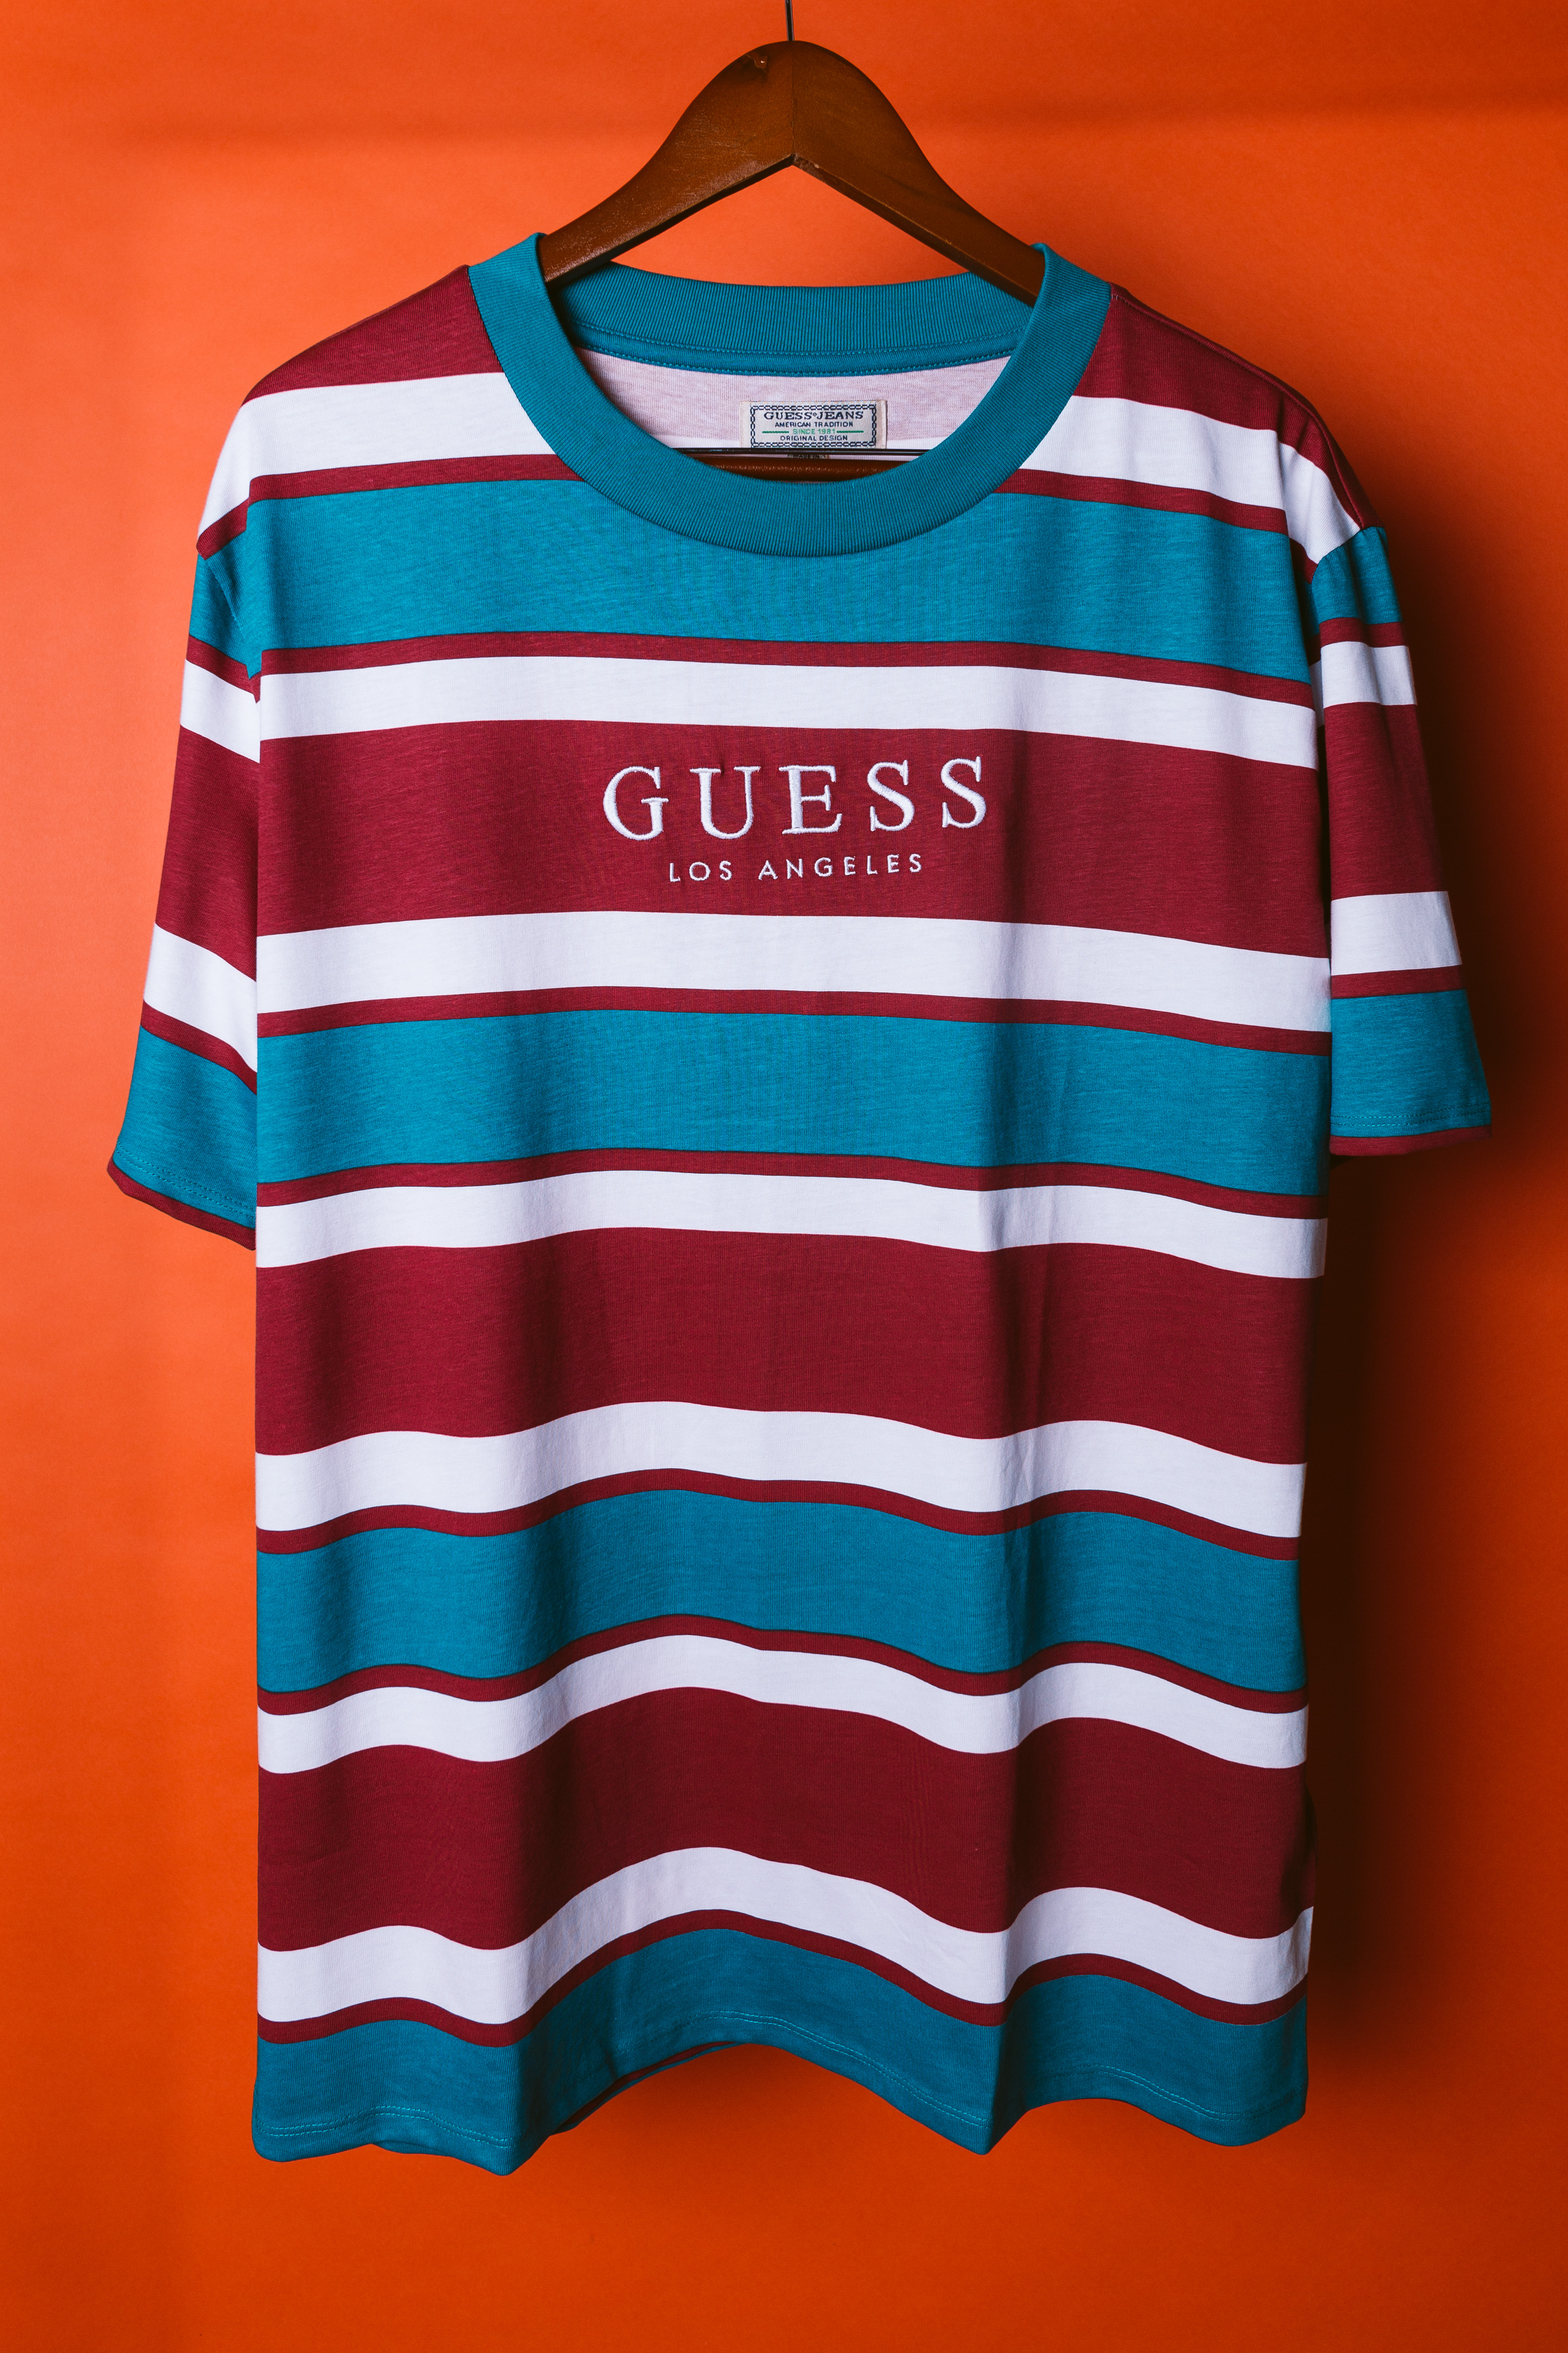 8d5f53420339 Guess Jeans Usa 1981 Capsule Striped T Shirt Asap Vintage Vertical ...